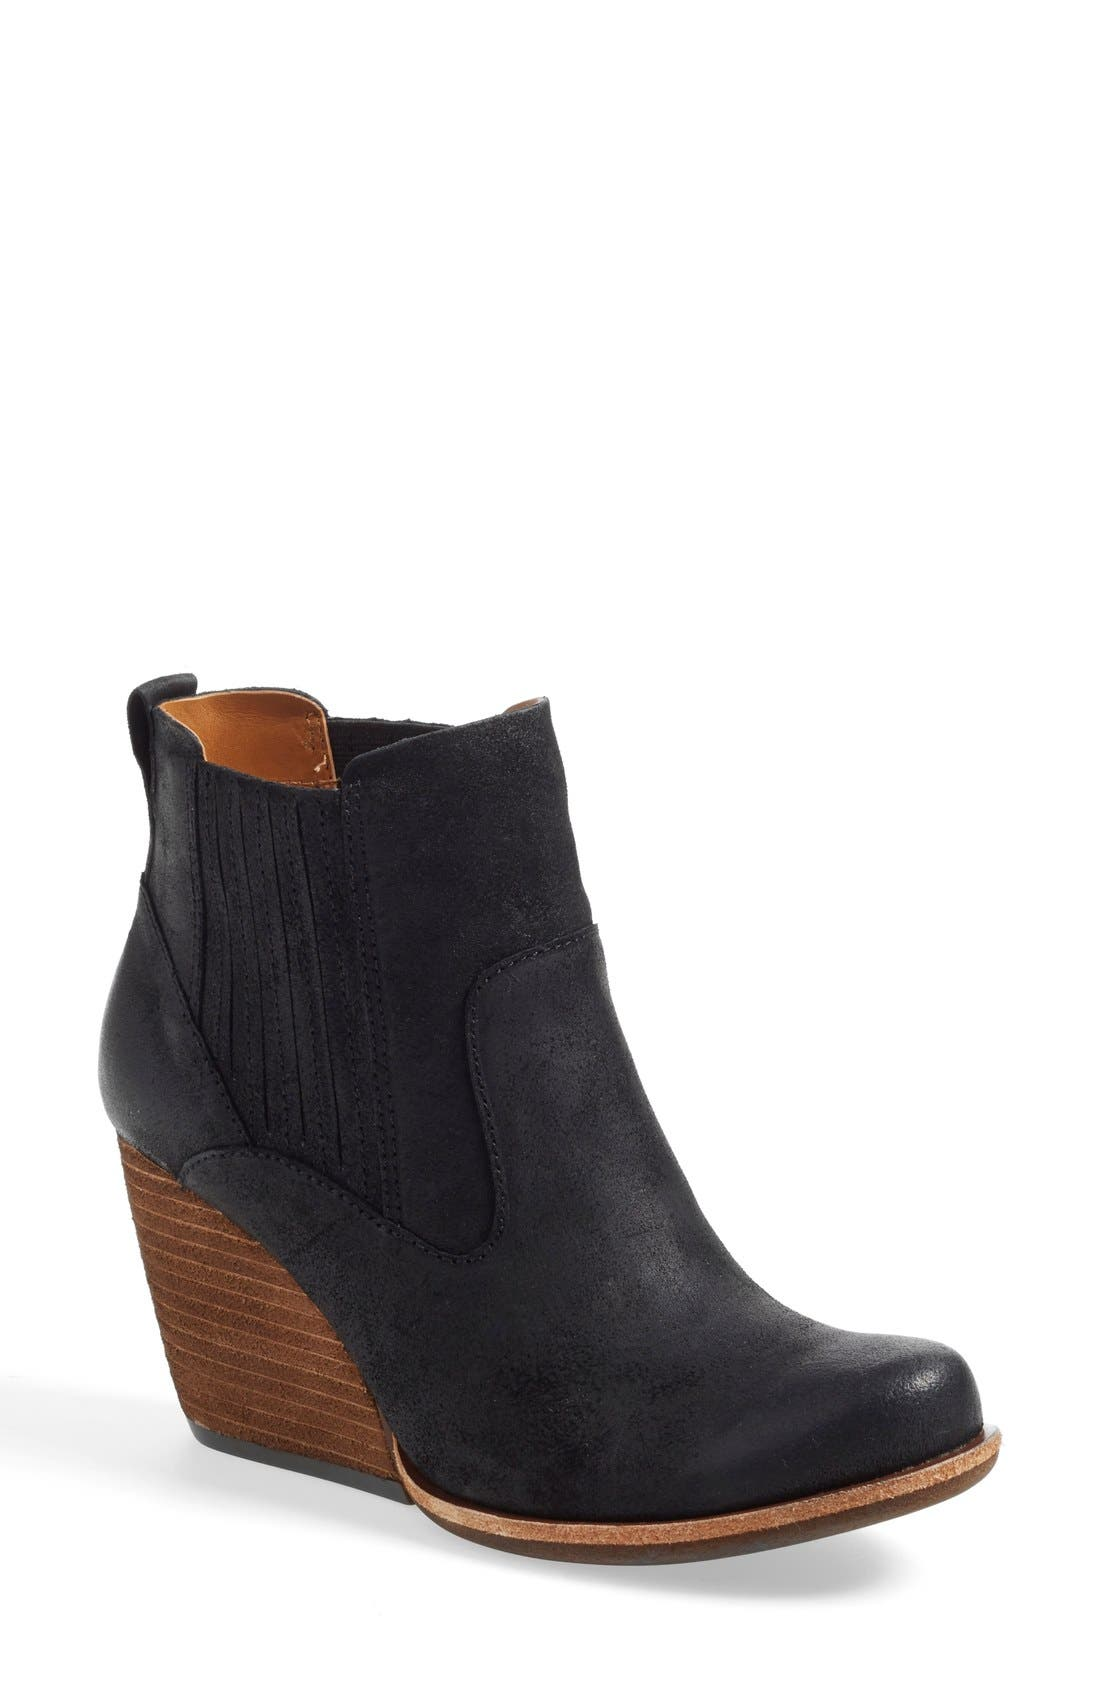 Alternate Image 1 Selected - Kork-Ease® 'Verdelet' Wedge Bootie (Women)